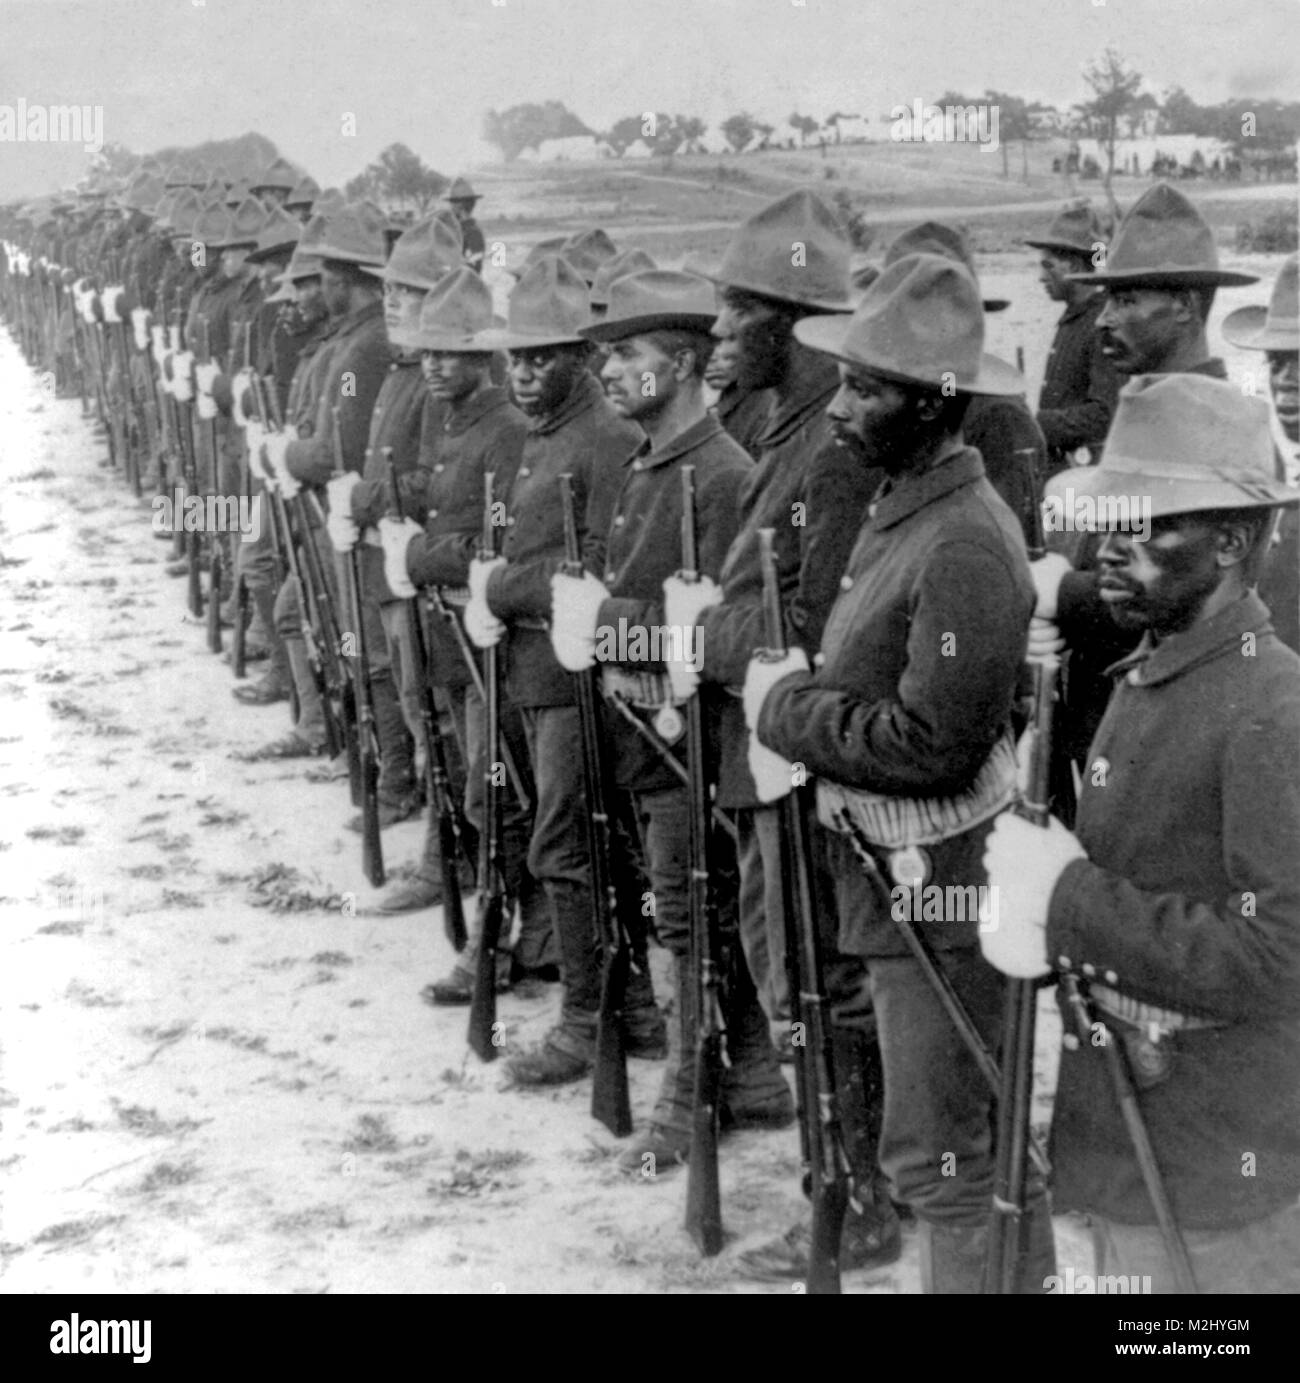 Spanish-American War, Buffalo Soldiers, 10th Cavalry, 1899 - Stock Image